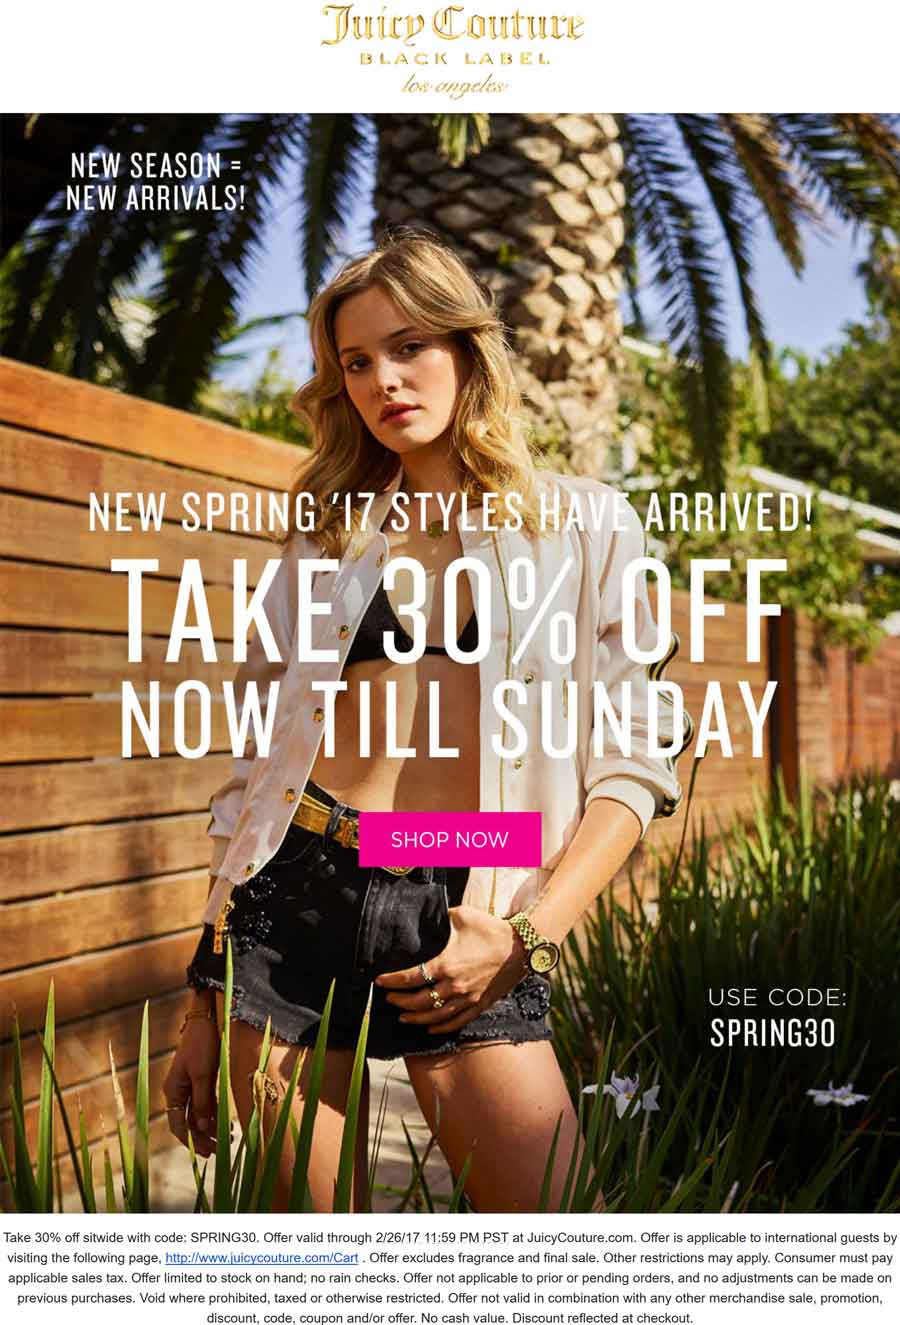 JuicyCouture.com Promo Coupon 30% off everything online at Juicy Couture via promo code SPRING30